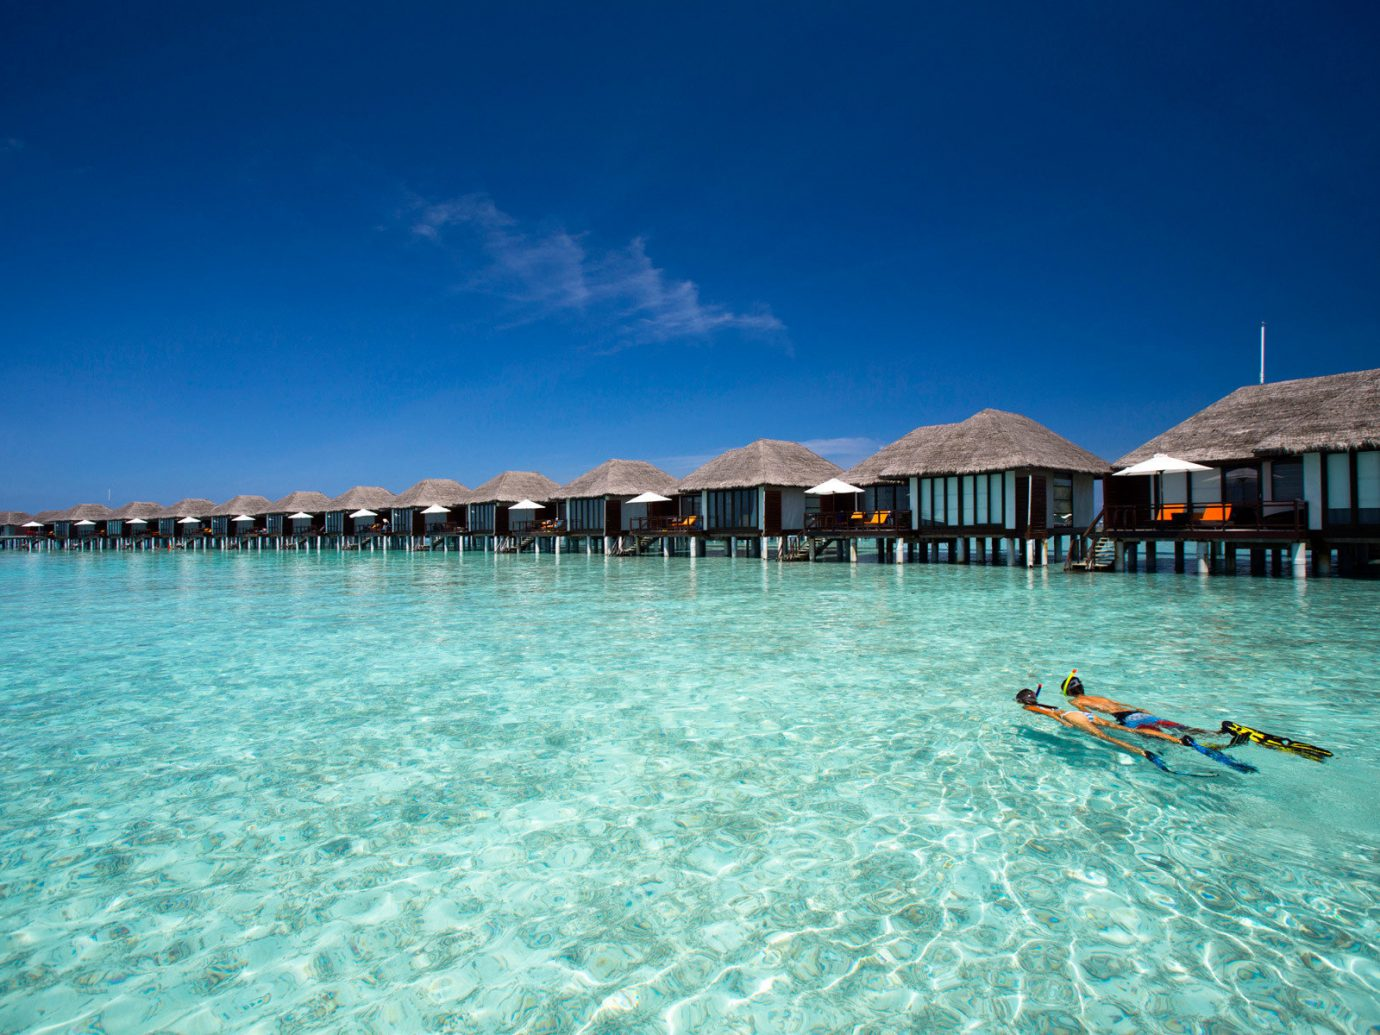 People swimming in front of bungalows at Velassaru Maldives